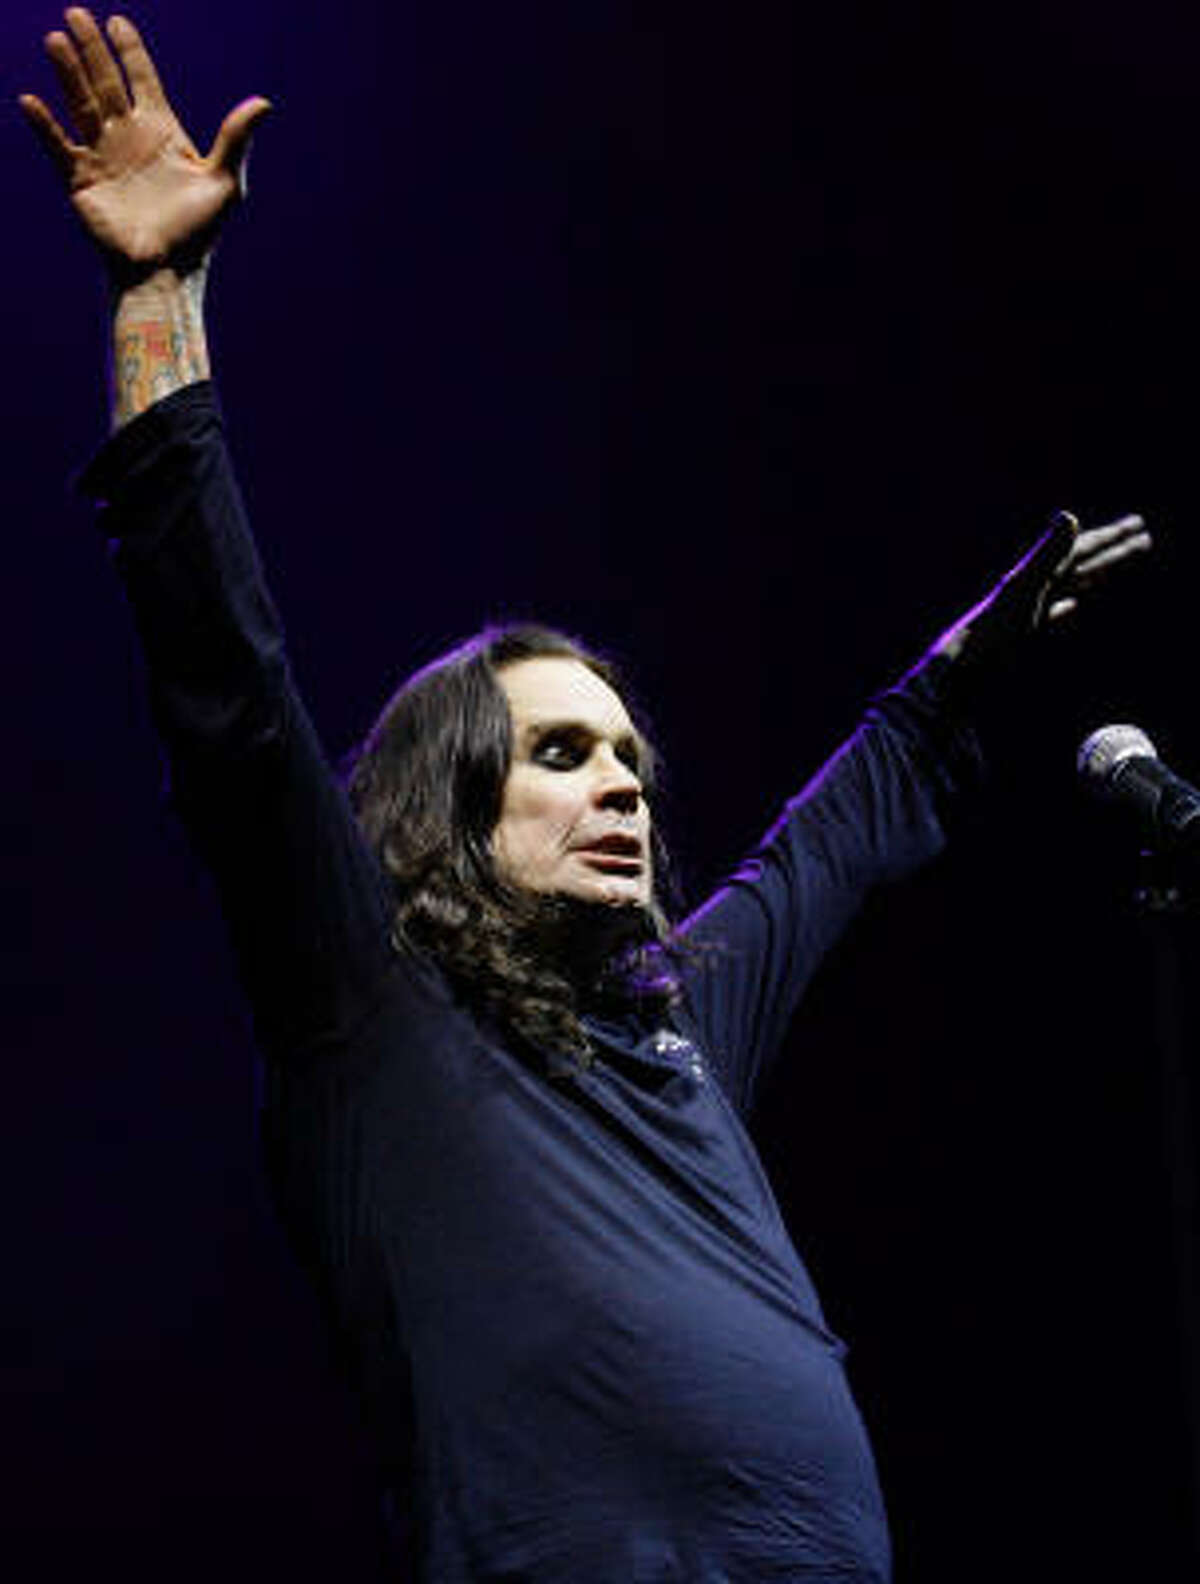 True: Ozzy Osbourne did in fact bite the head off a bat. At a concert in 1982, an audience member threw a bat onstage. Ozzy, not realizing the bat was real, proceeded to bite the animal's head off. There is still debate as to whether the bat was alive or dead when thrown on the stage, but really - does it matter? Osbourne had to get a series of rabies shots.